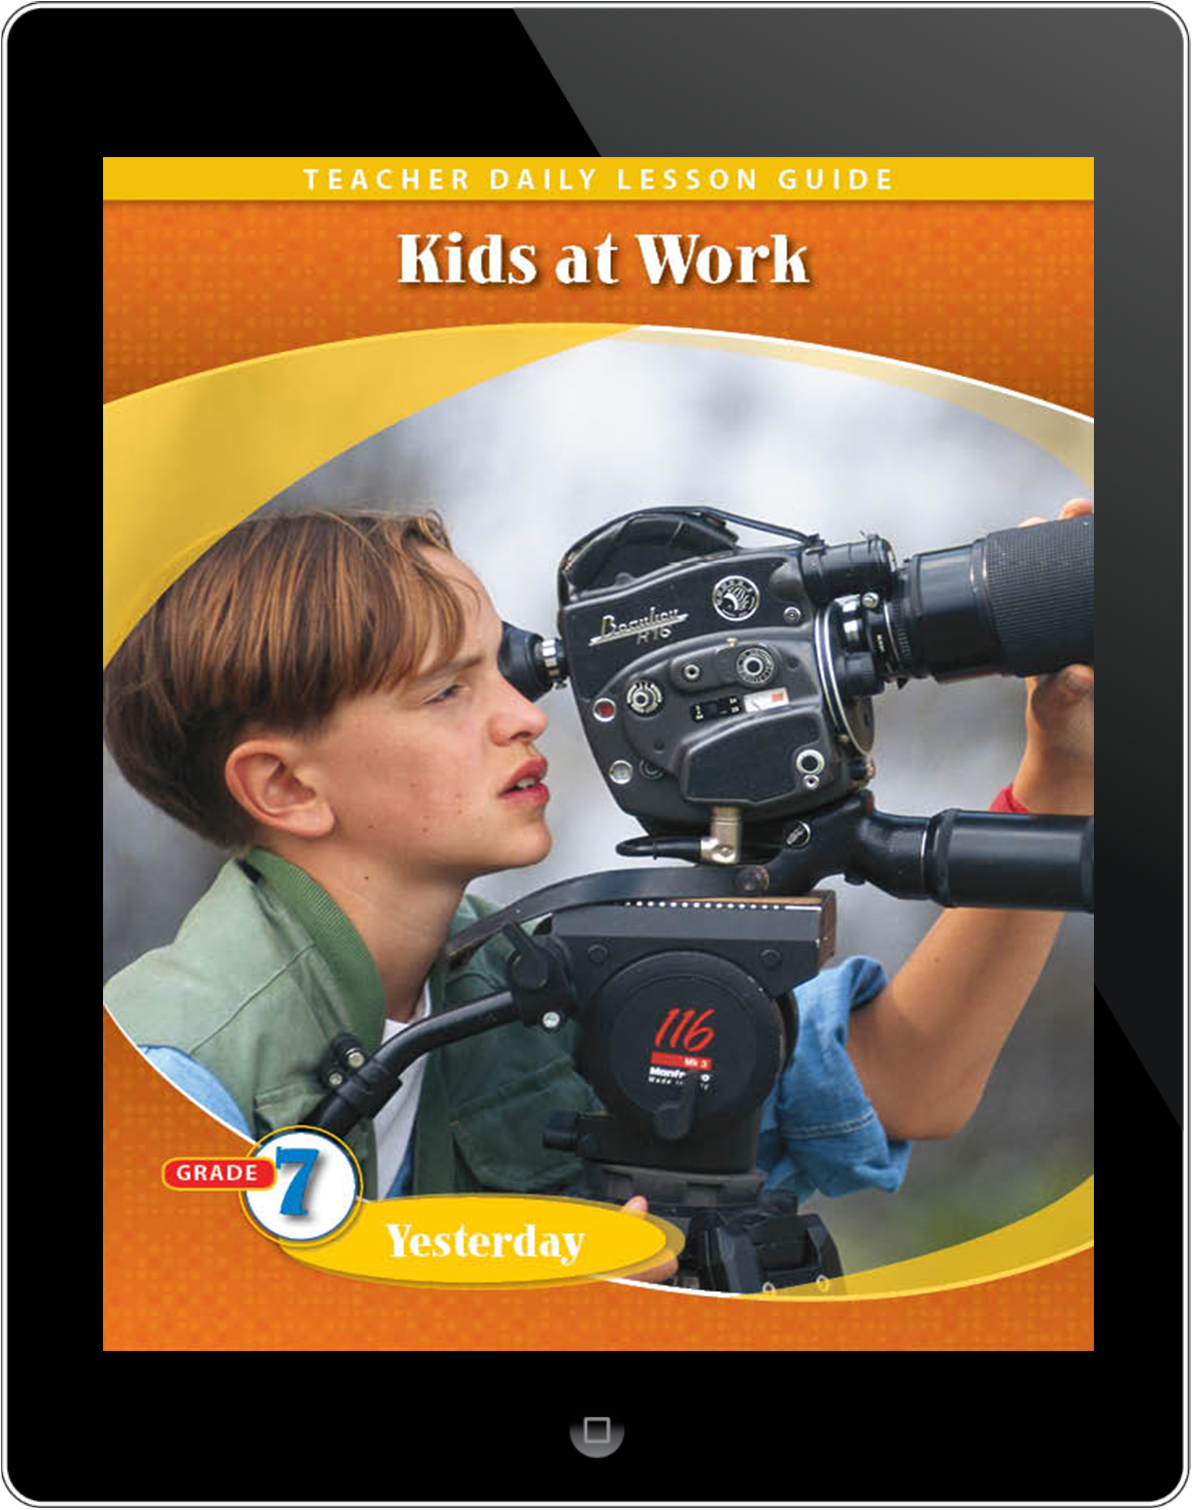 Pathways2.0 Grade 7 Yesterday Unit: Kids at Work Daily Lesson Guide 5 Year License